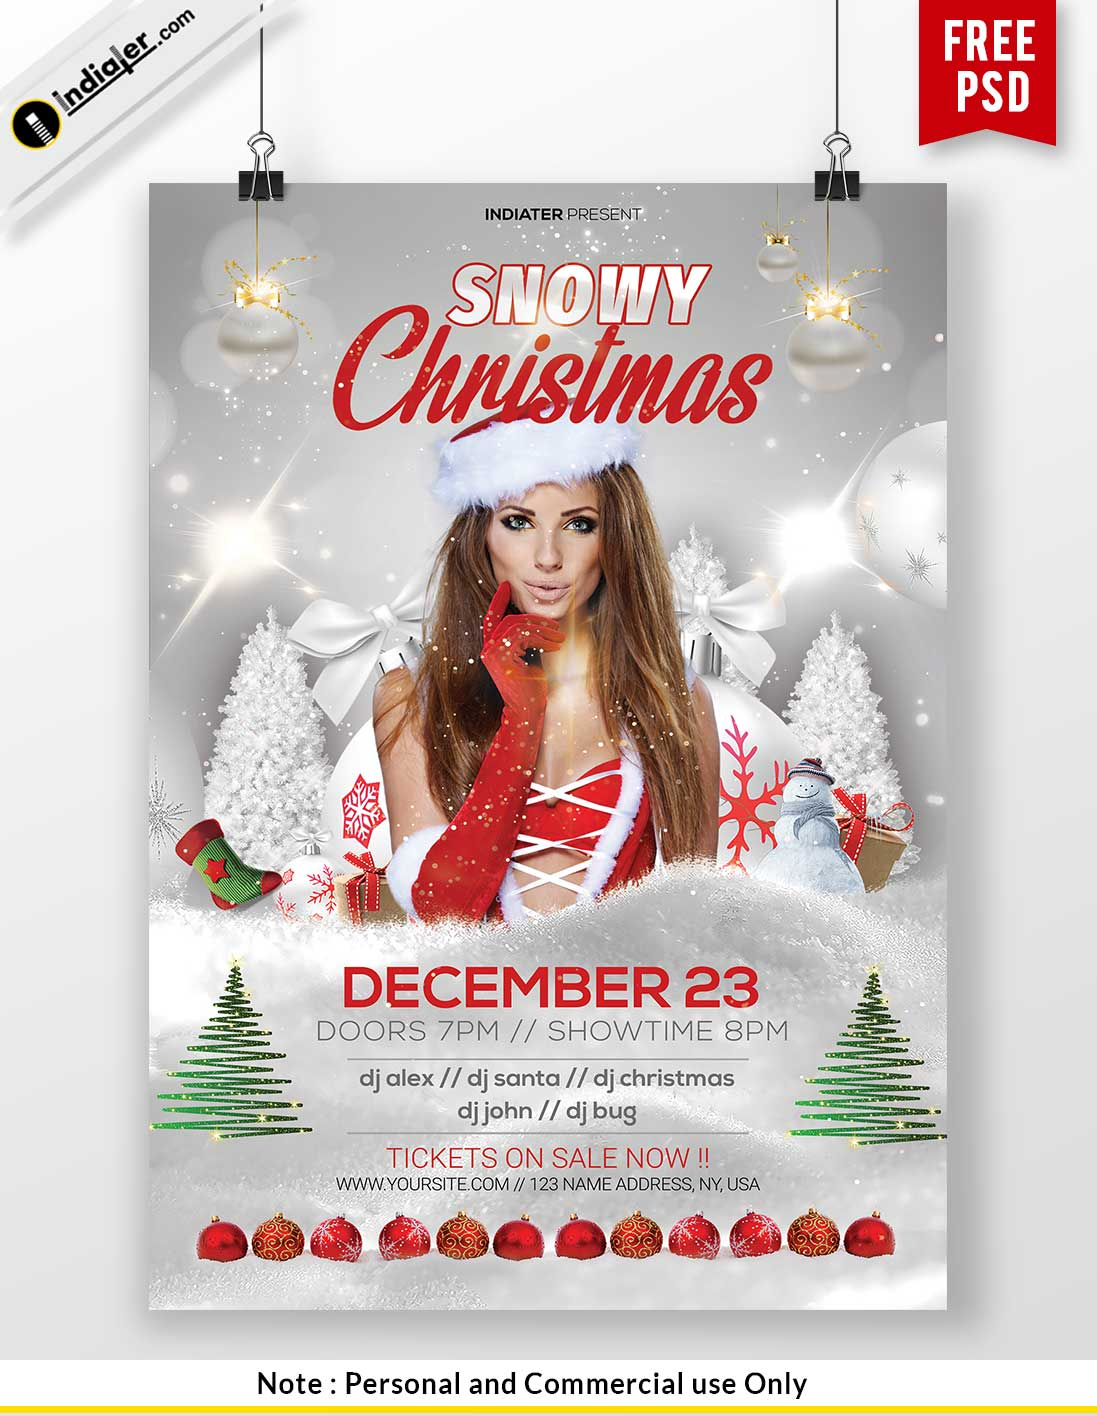 Free Printable Christmas Party Flyer Templates Poster Templates Indiater